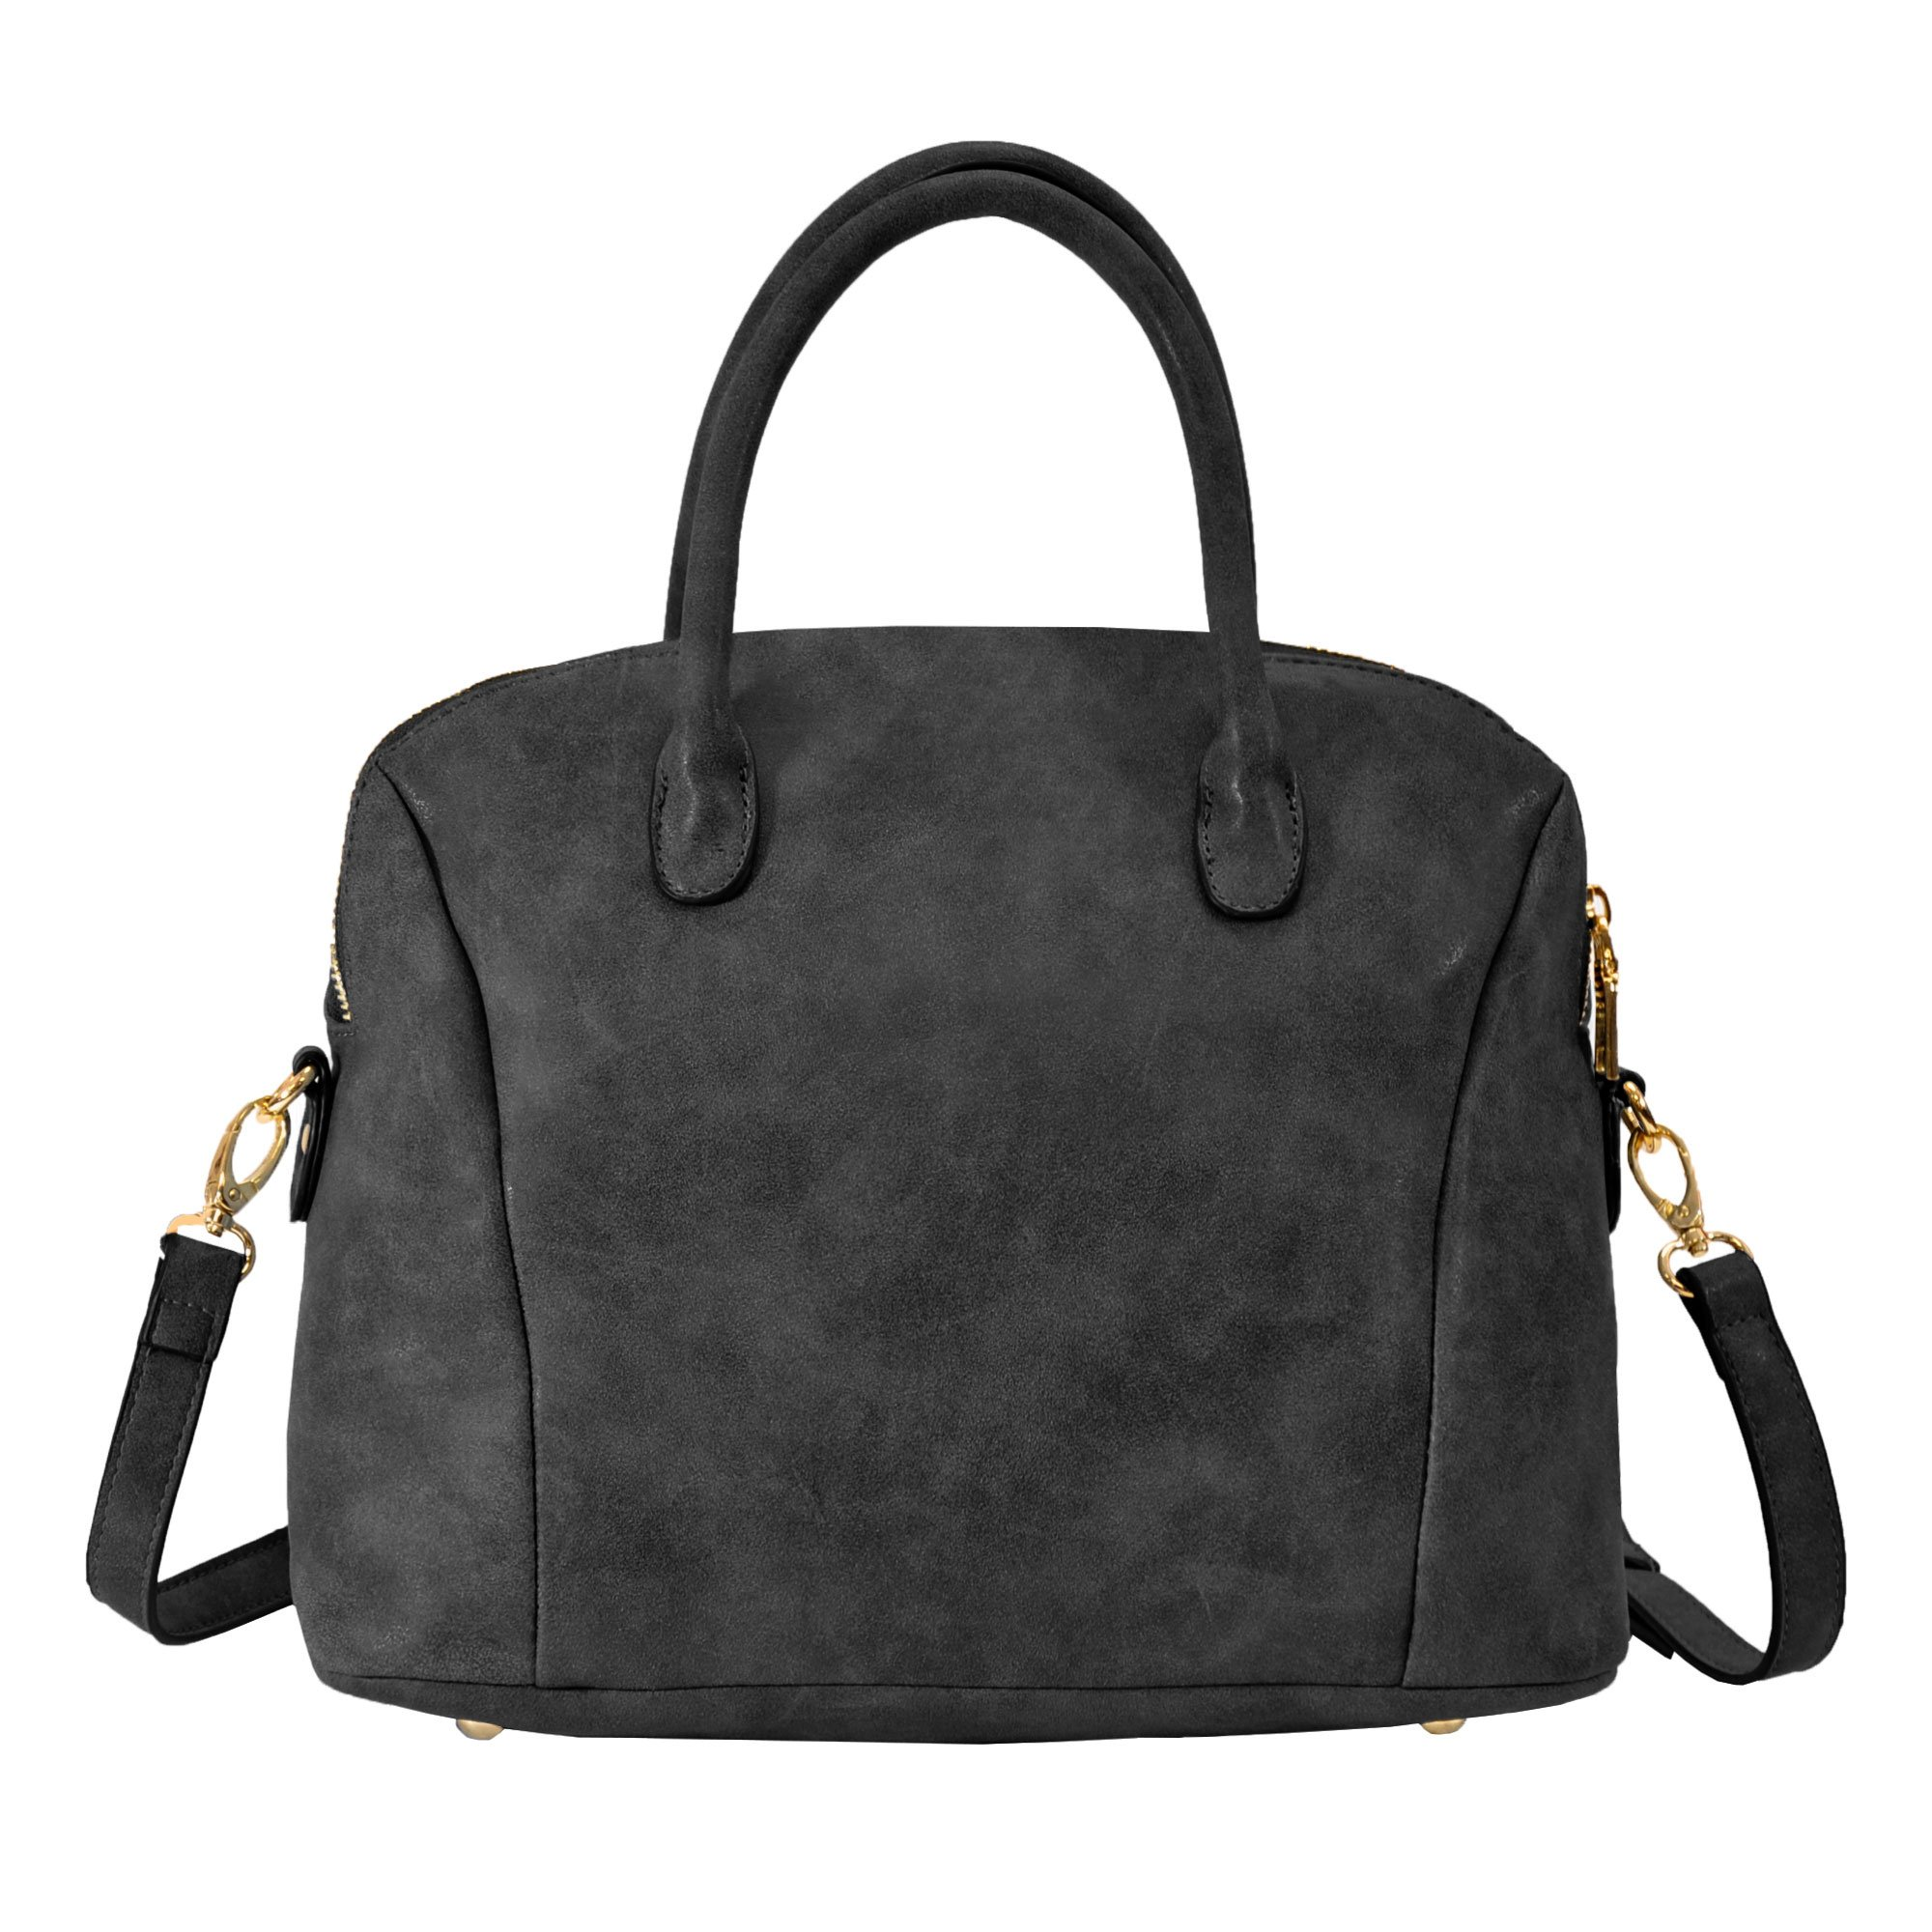 MoDA Fashion Collection Doctor's Style Double Handle Tote